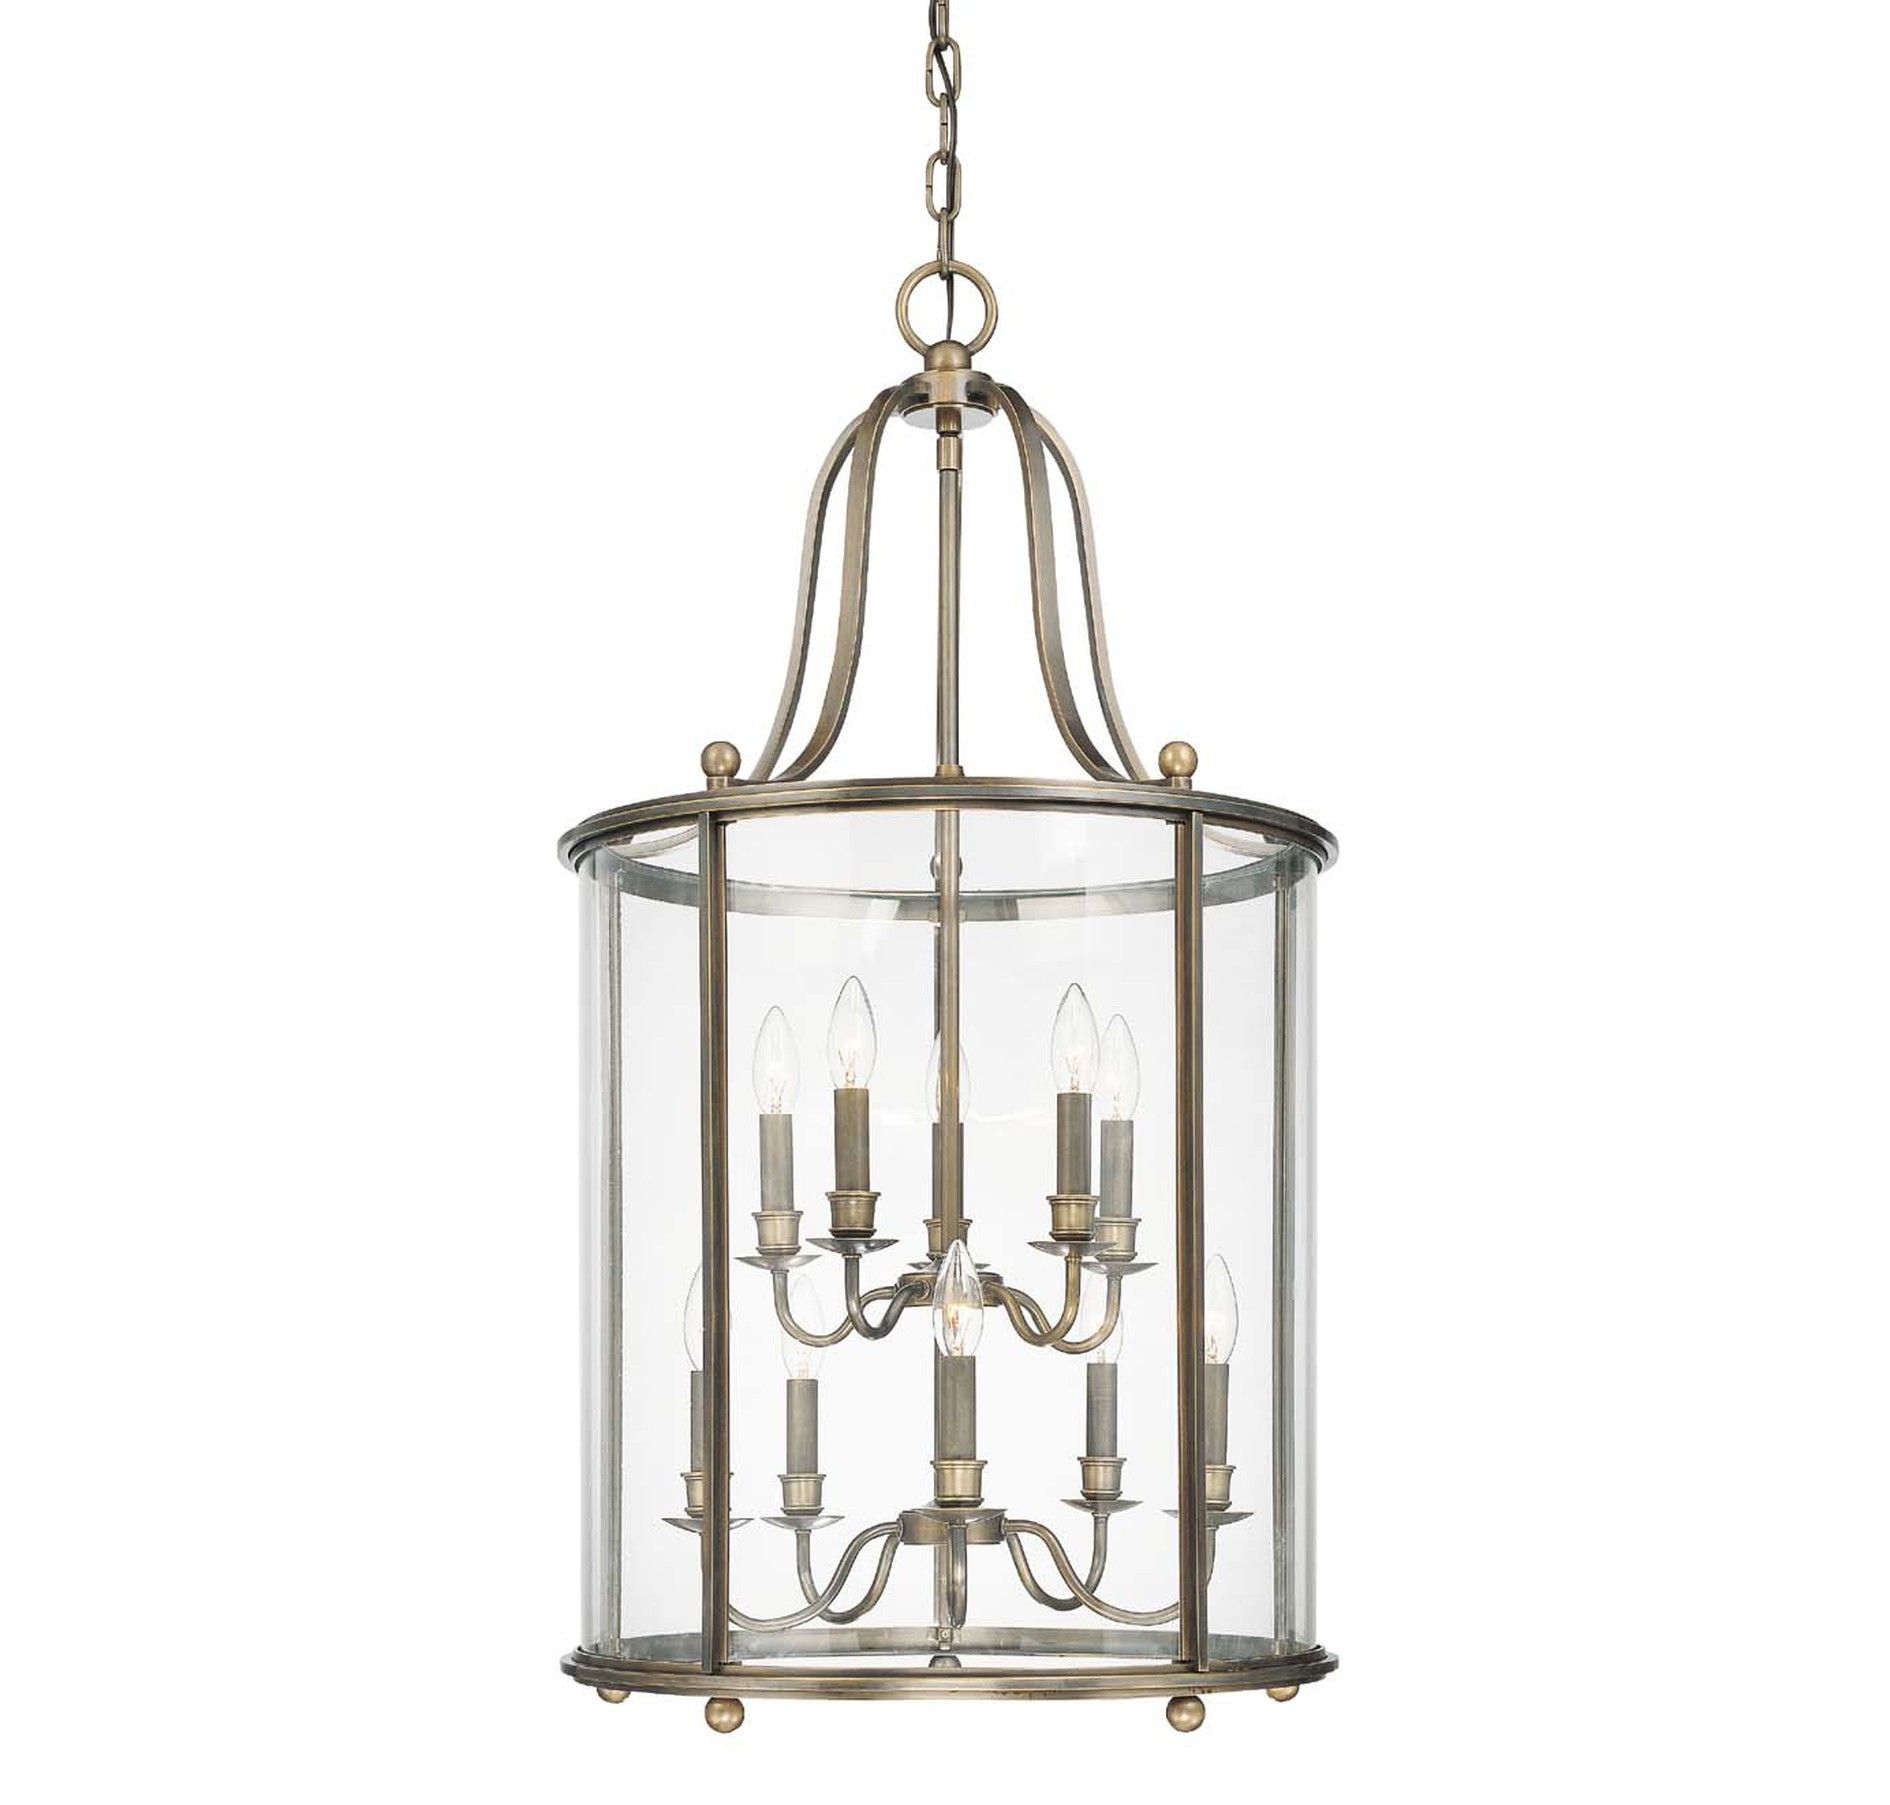 Hudson valley mansfield pendant in ceiling lights entry lights